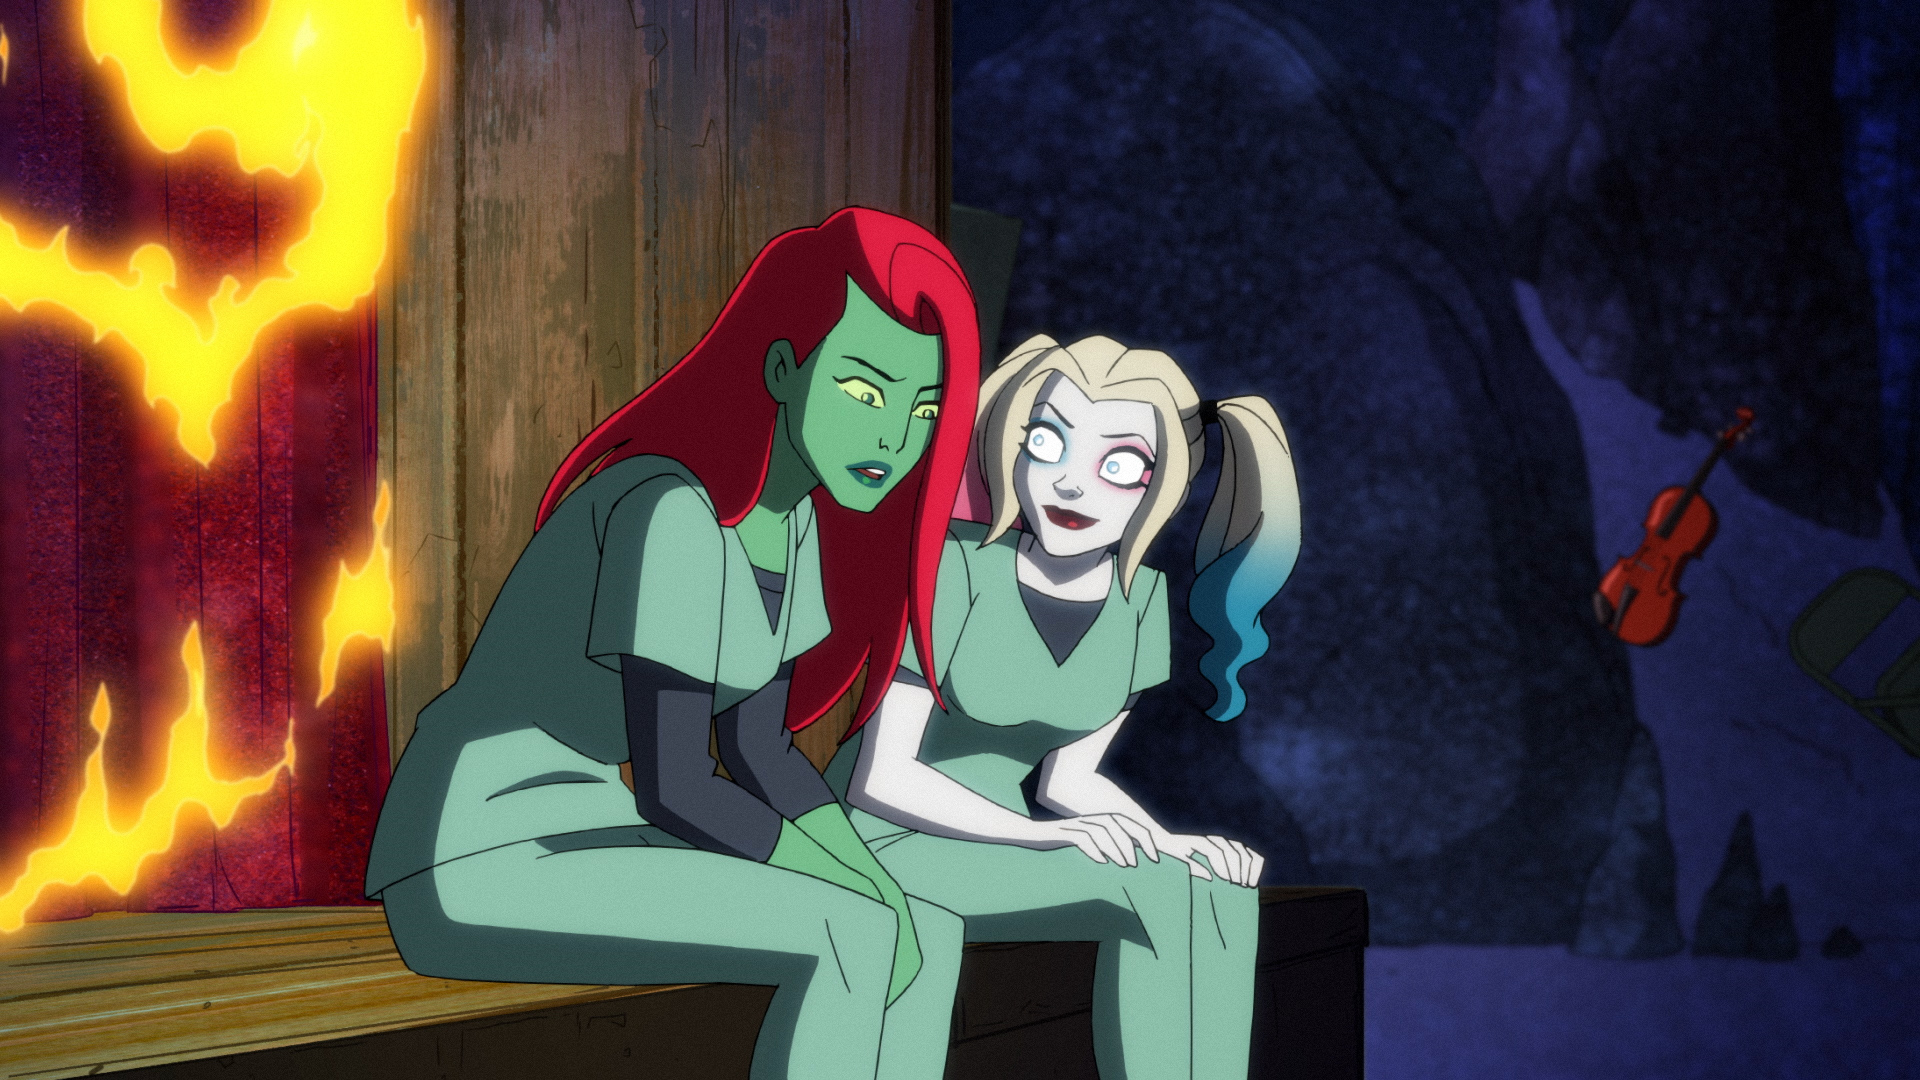 Poison Ivy and Harley Quinn in Bane's pit prison in Season 2 of 'Harley Quinn'